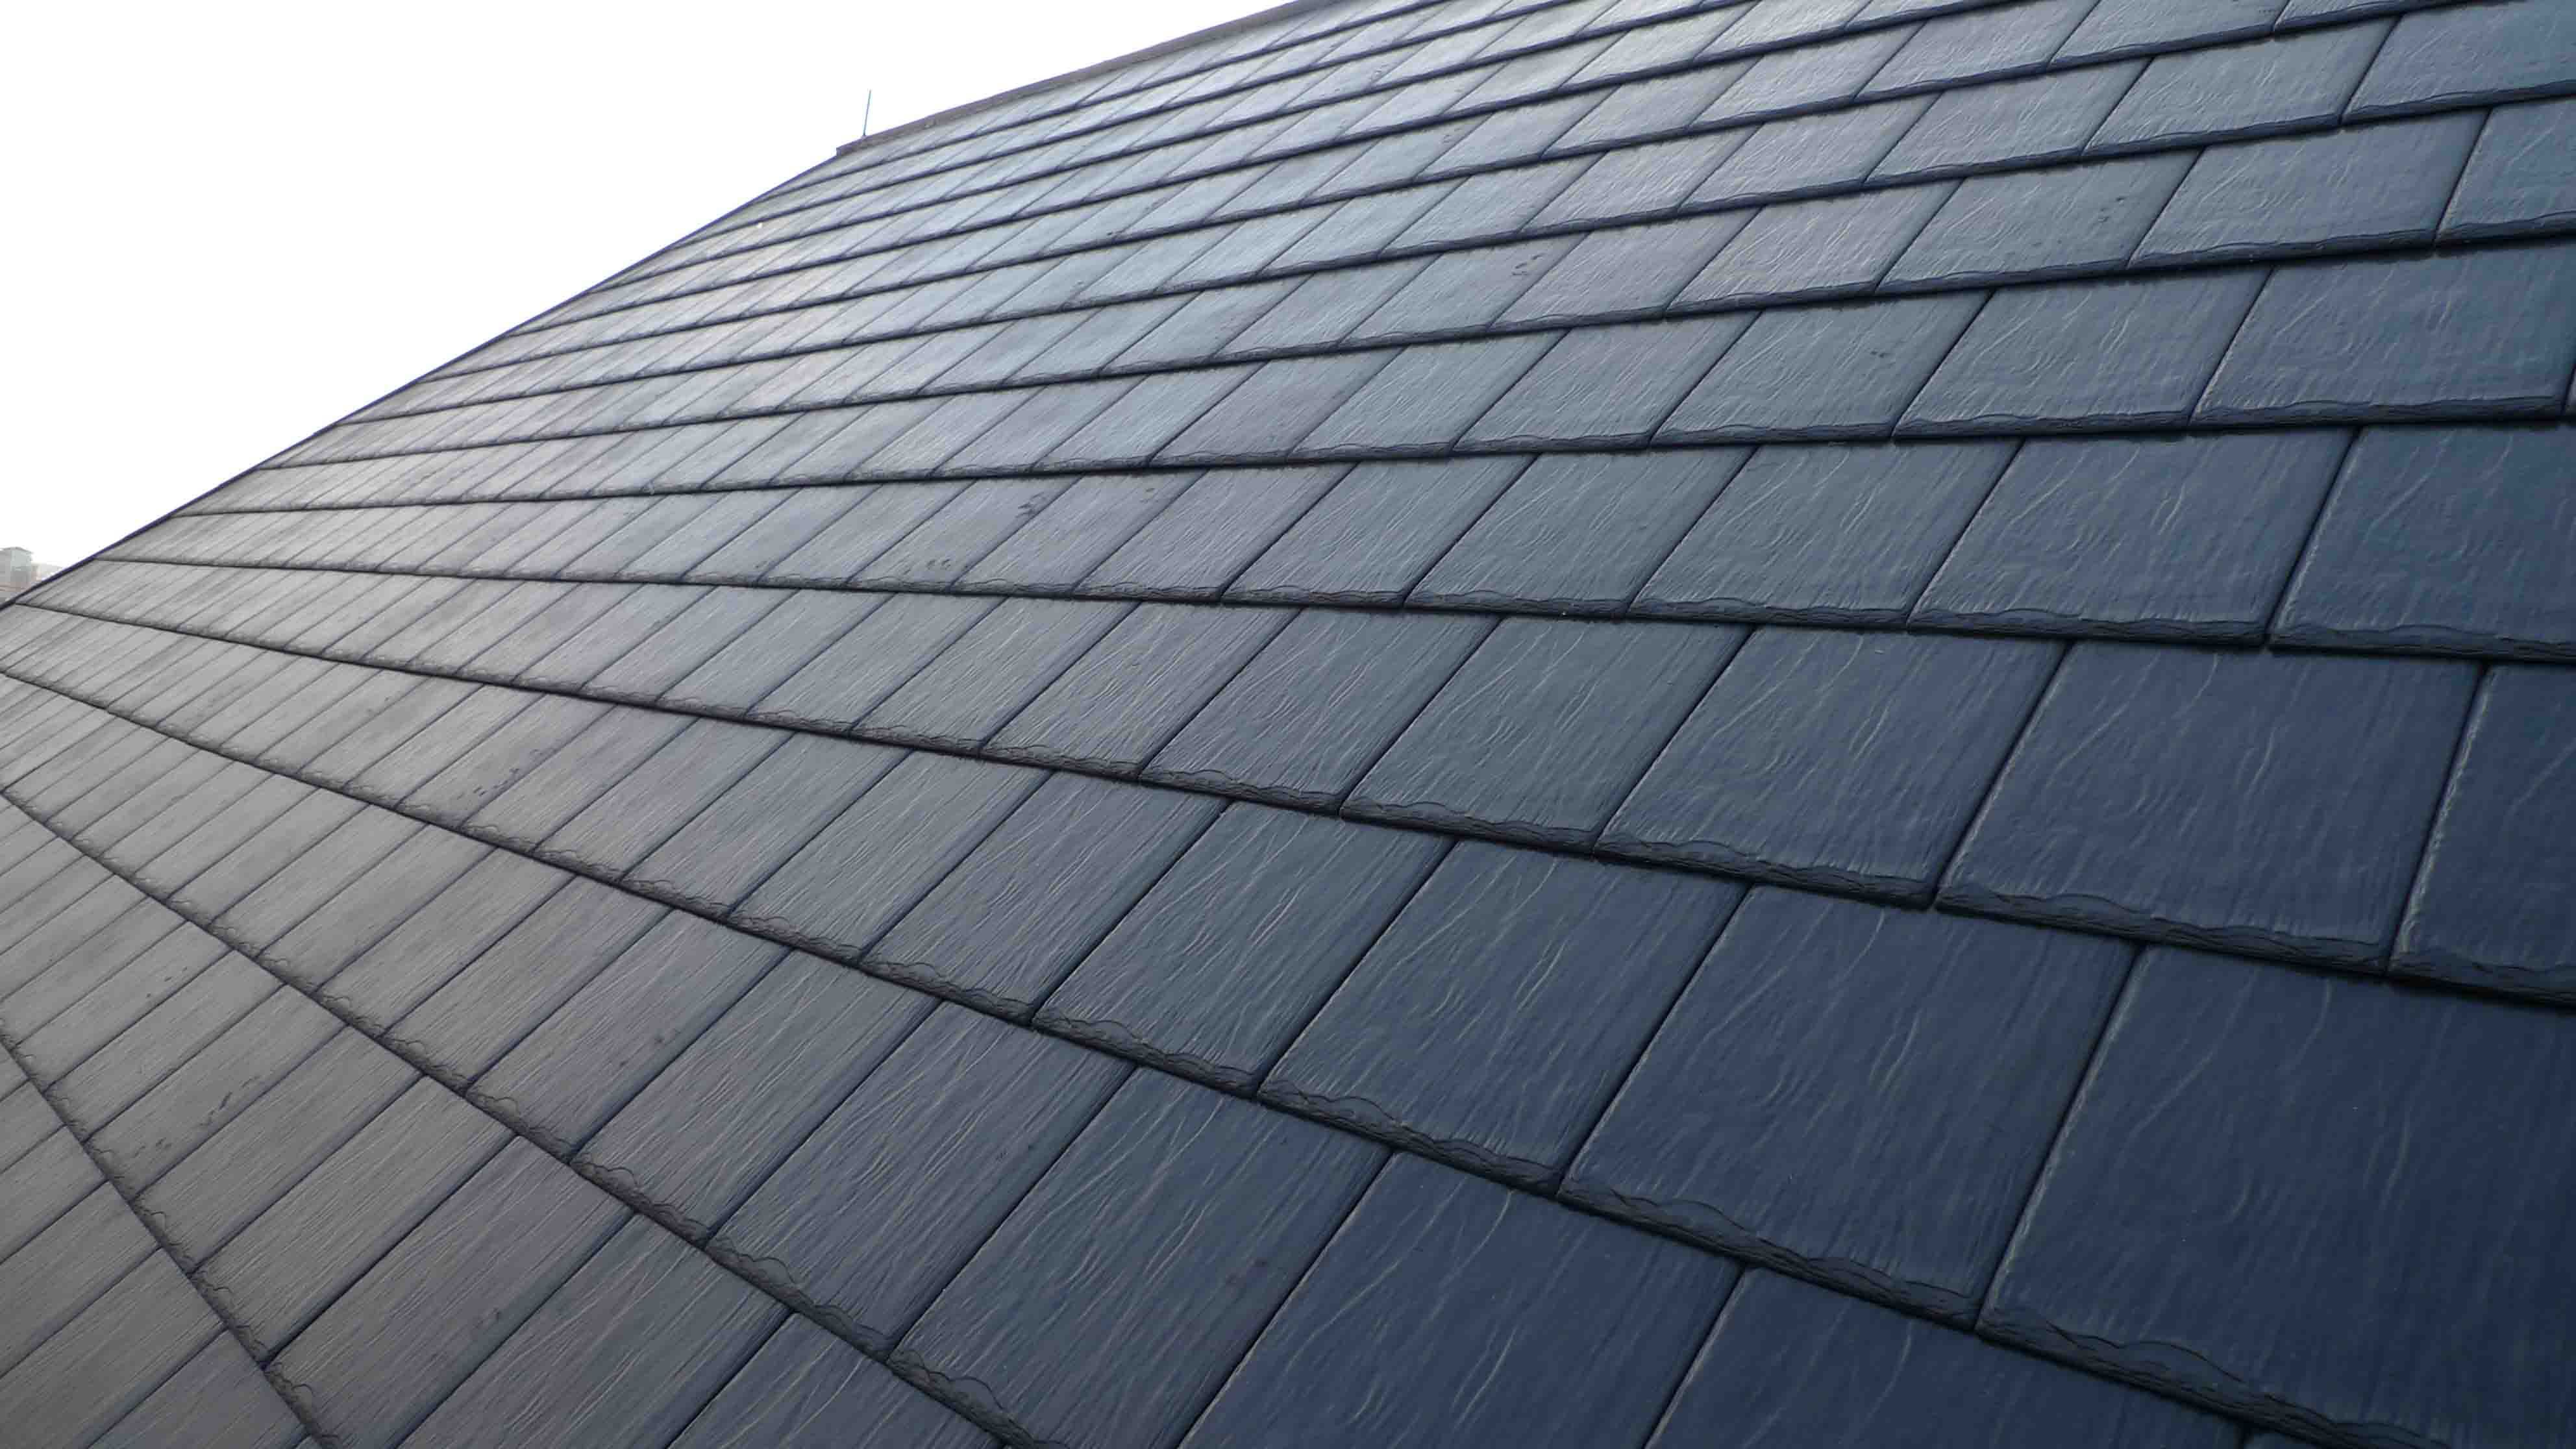 Slate Roof (With images) | Roof tiles, Terracotta roof ...